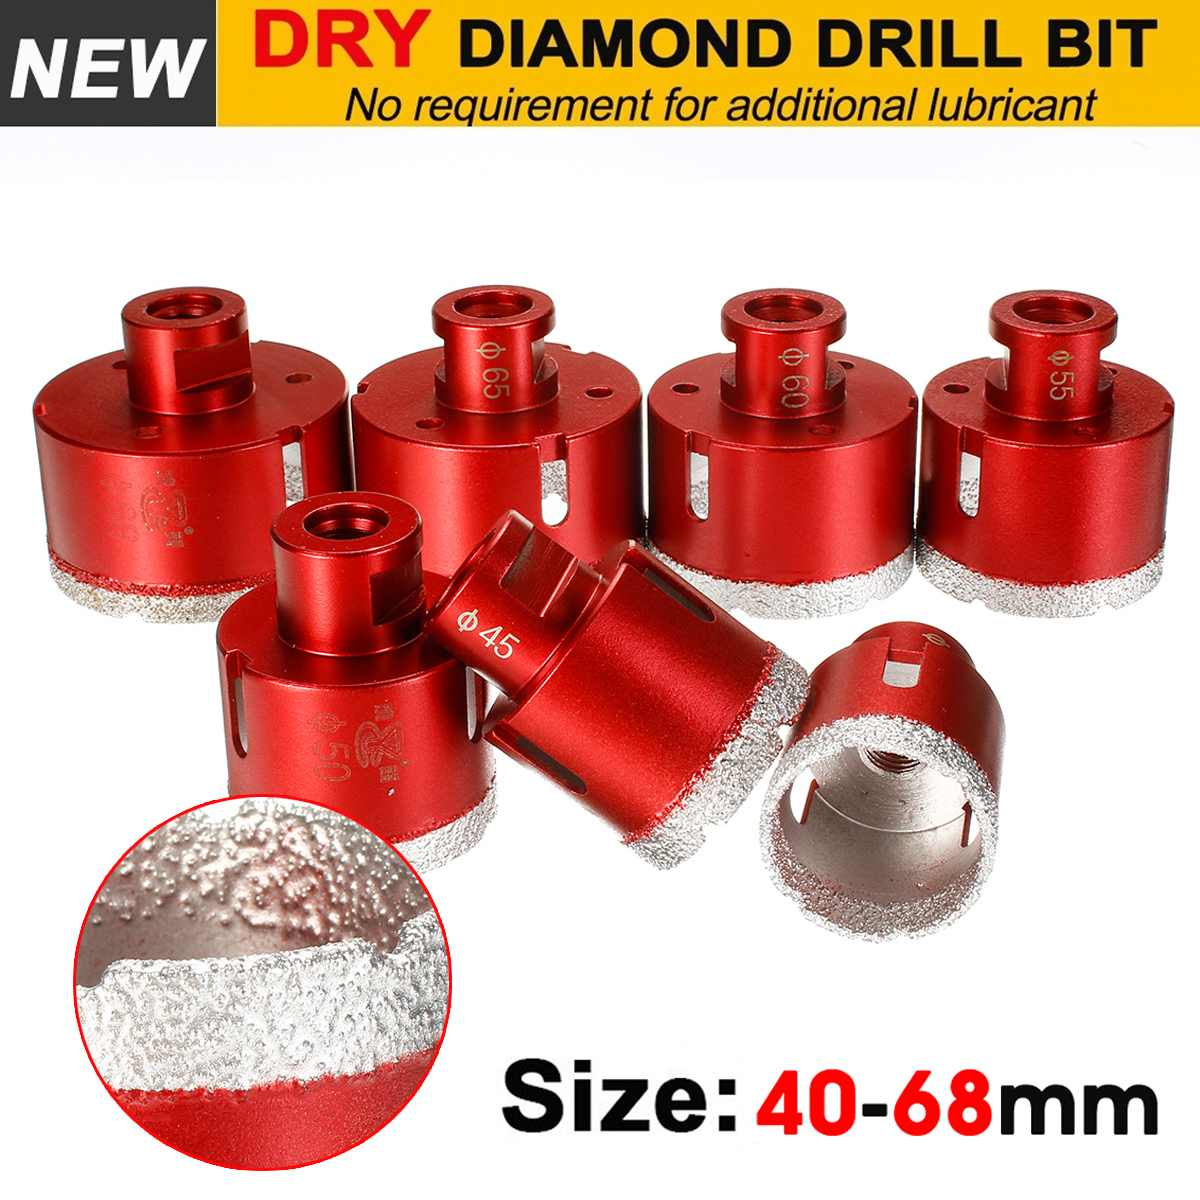 Doersupp 40-68mm M14 Diamond Drill Core Bits Drilling Hole Saw Tools For Tile Marble Granite Stone Brick Tile Ceramic Concrete